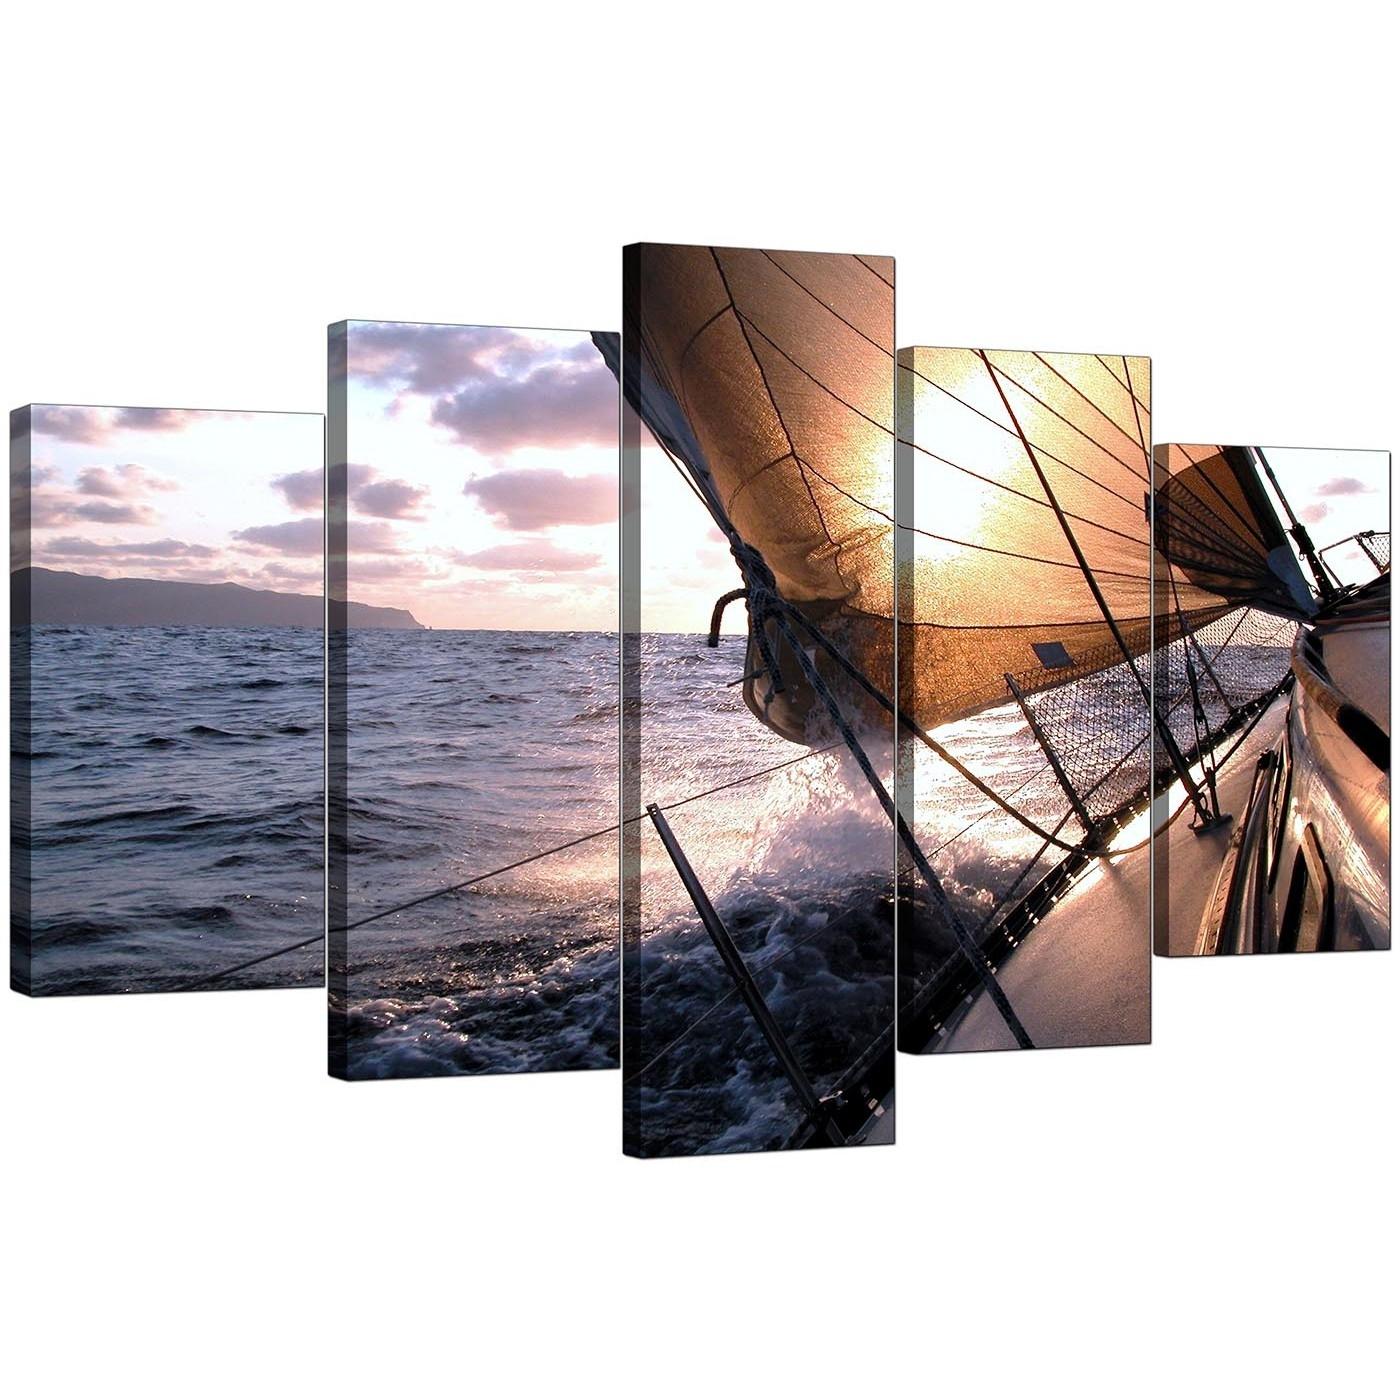 Boat Canvas Prints Uk For Your Living Room – 5 Piece For 2017 5 Piece Canvas Wall Art (View 3 of 20)